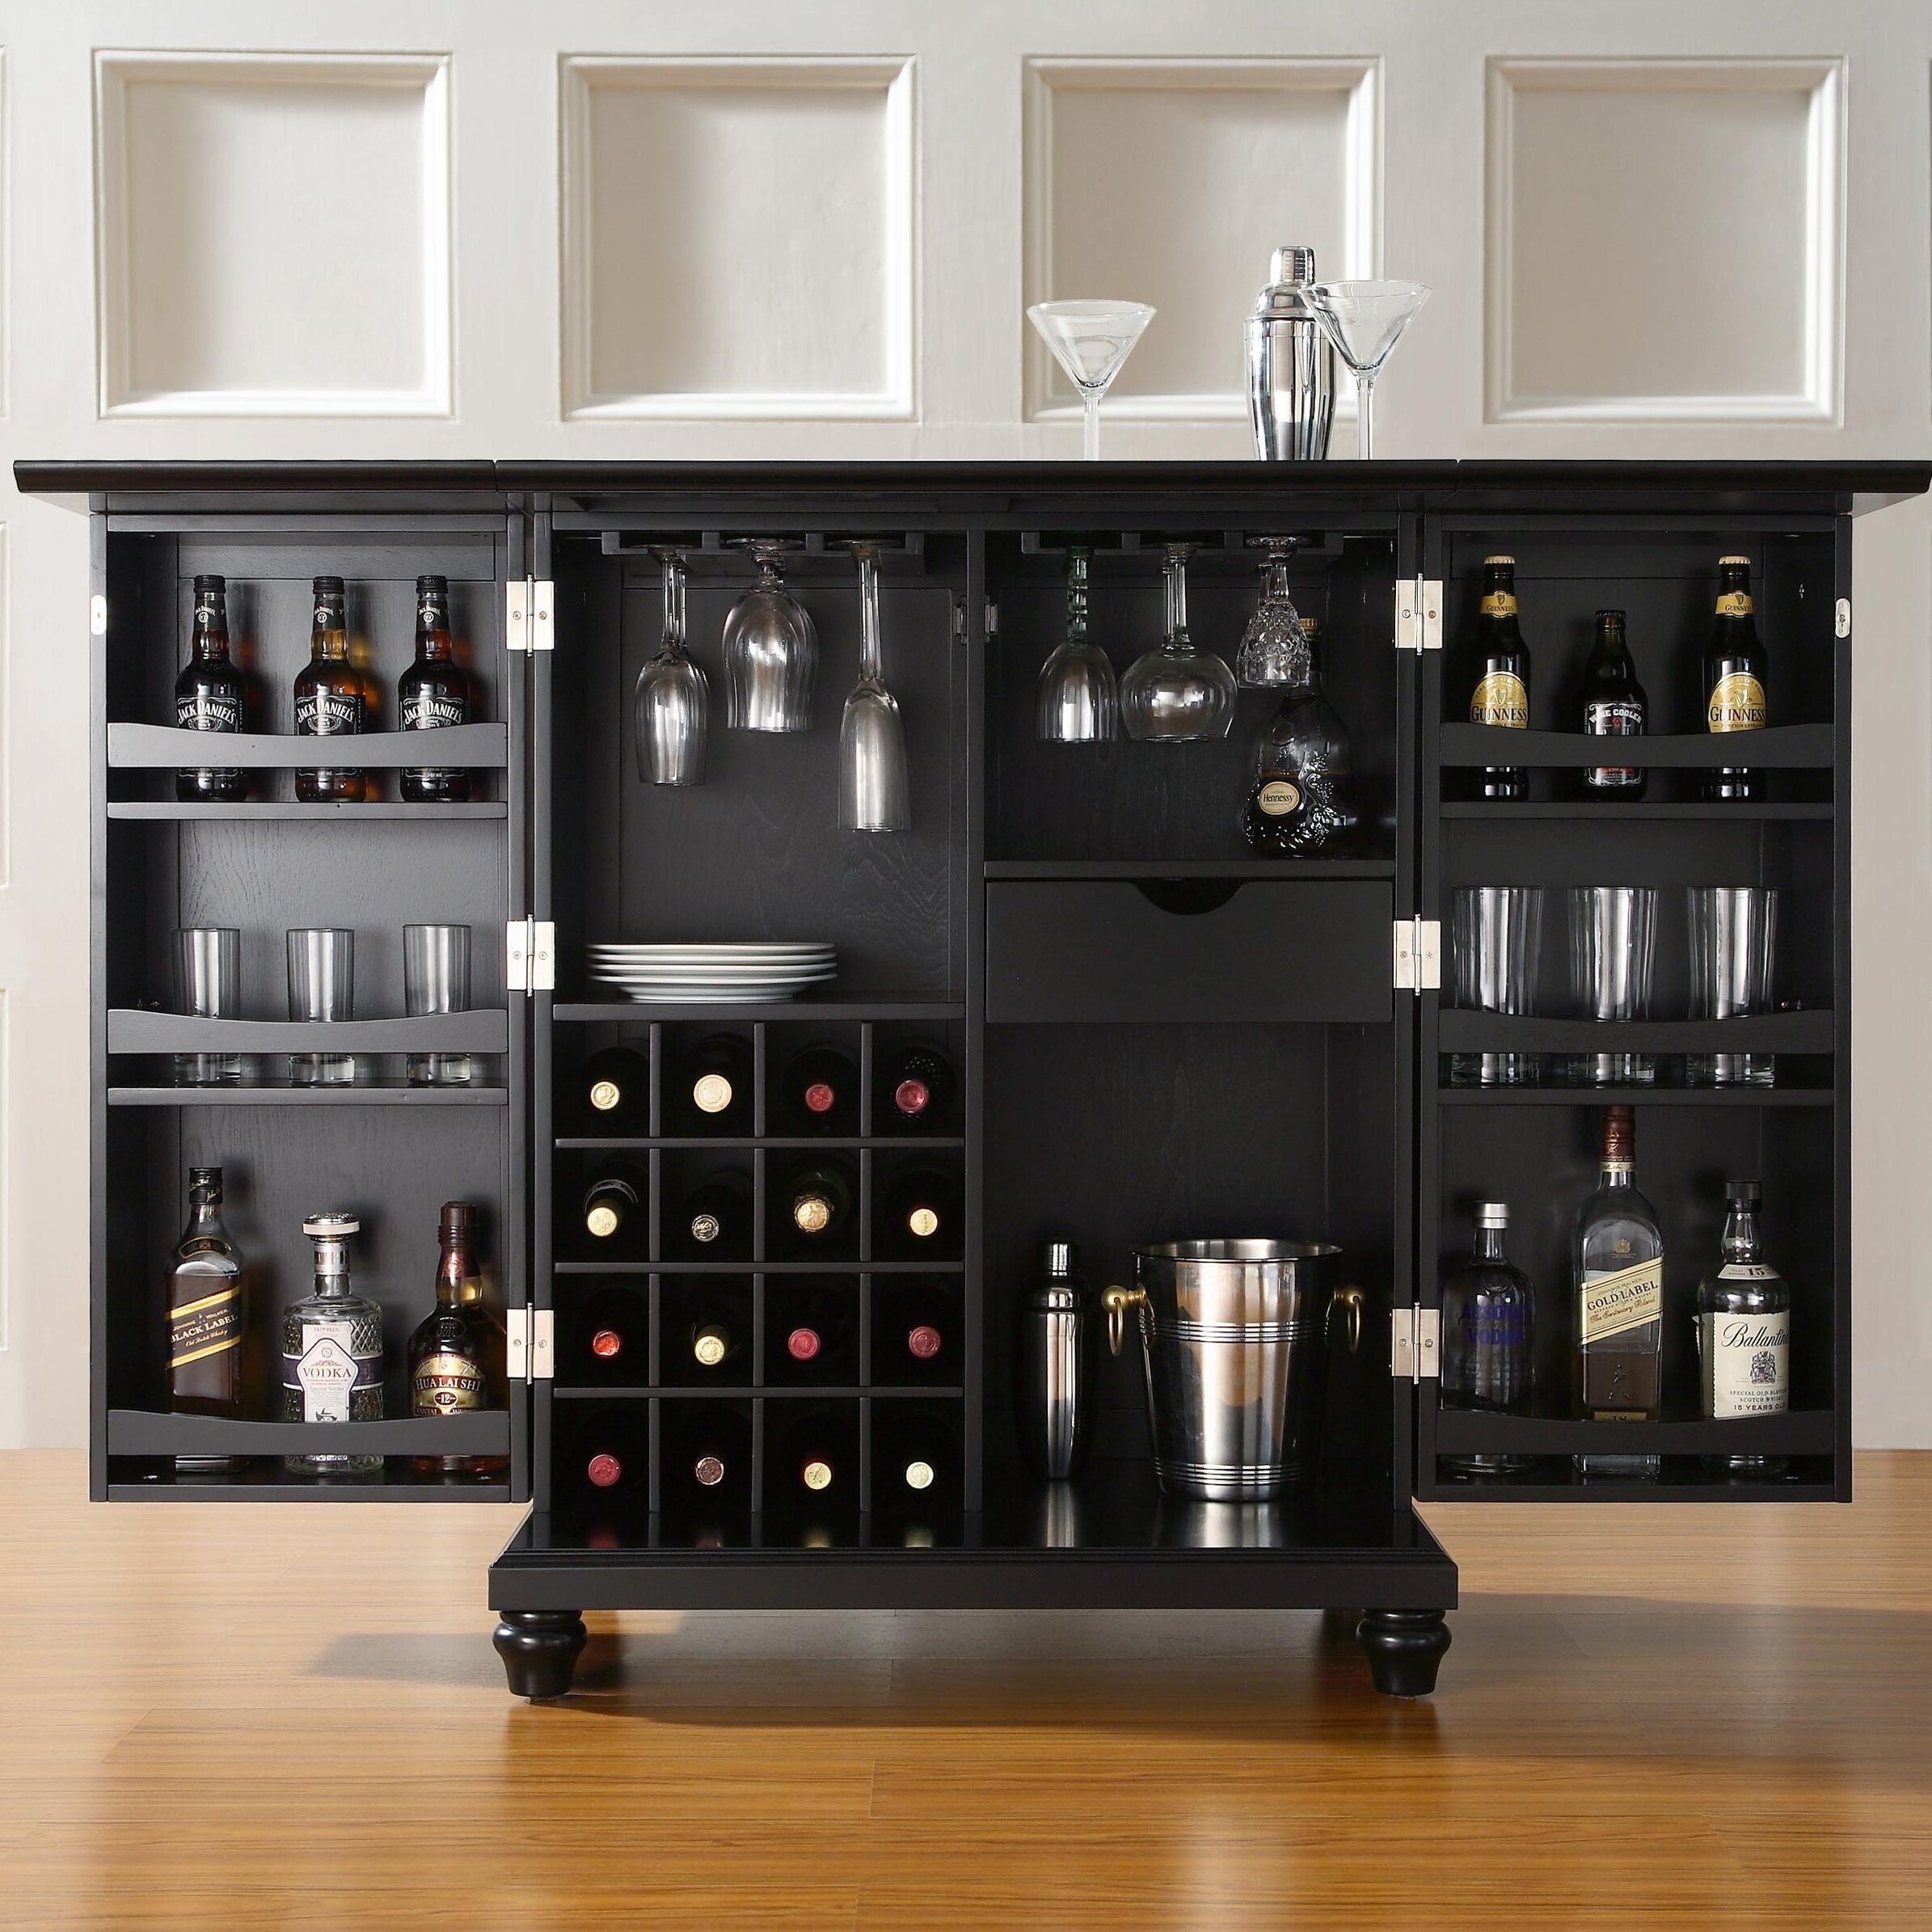 Darby Home Co Hanoverton Bar Cabinet With Wine Storage Reviews Wayfair